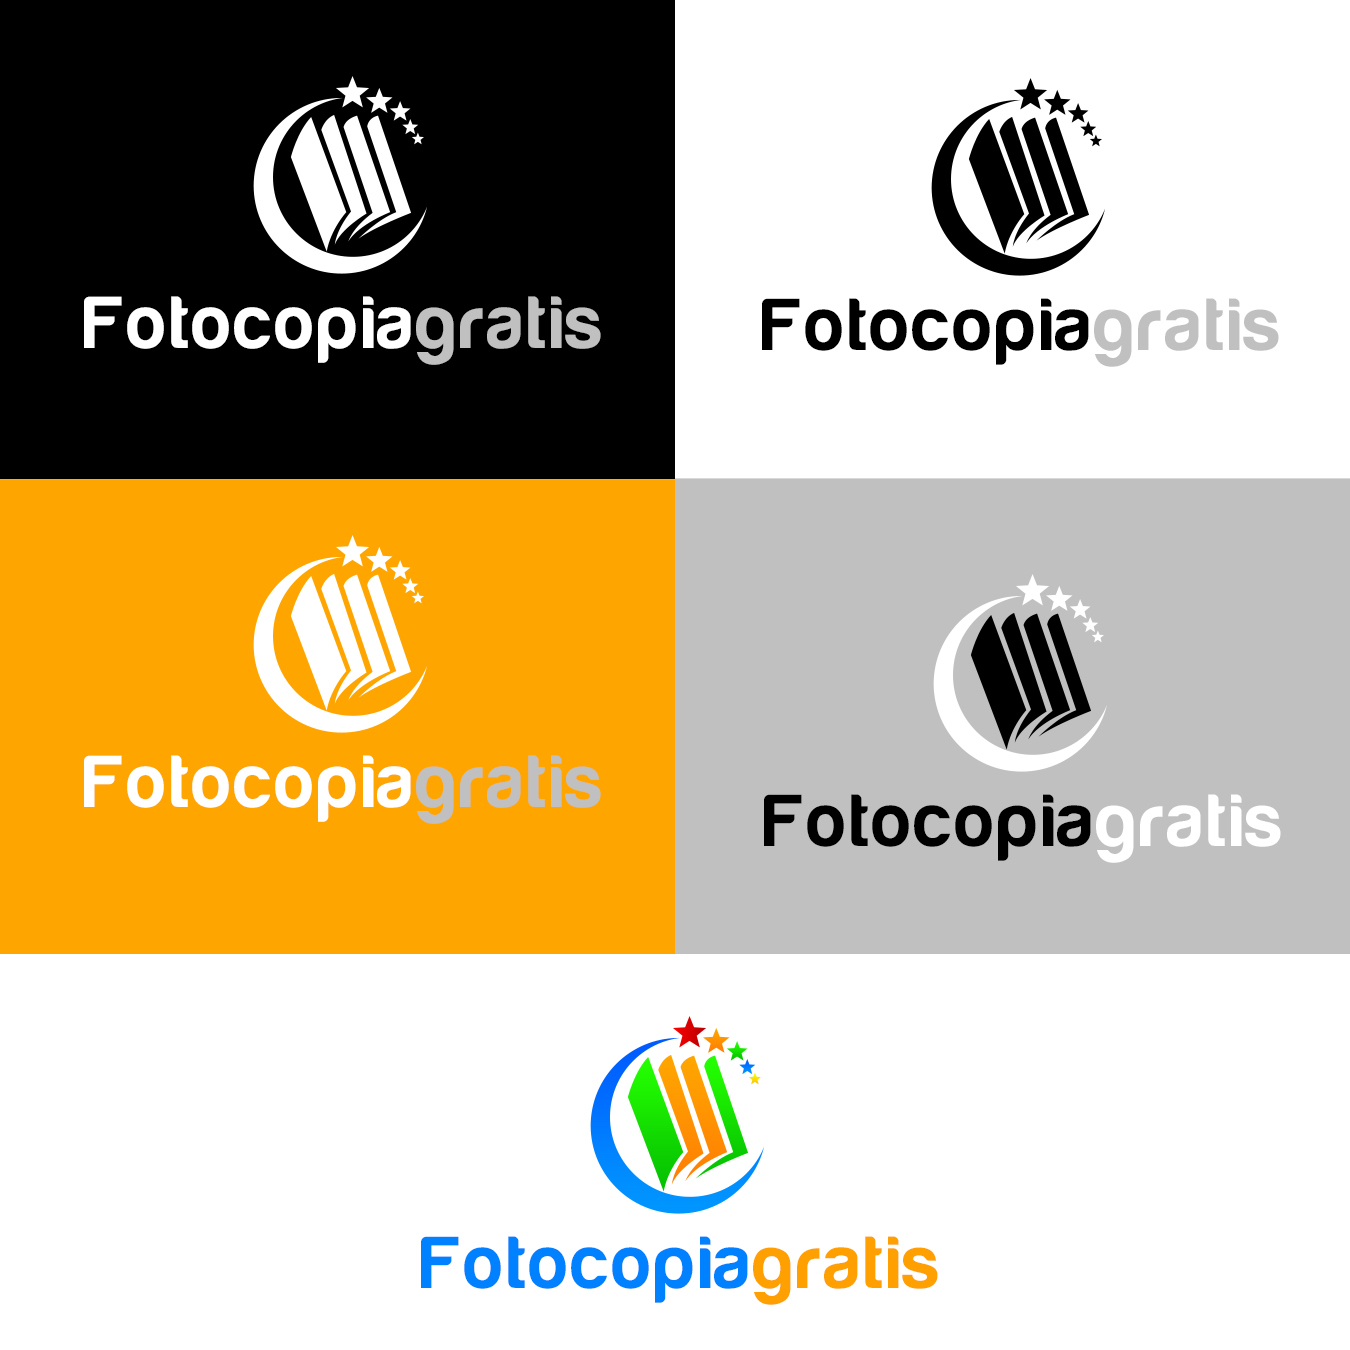 Logo Design by fireacefist - Entry No. 37 in the Logo Design Contest Inspiring Logo Design for Fotocopiagratis.